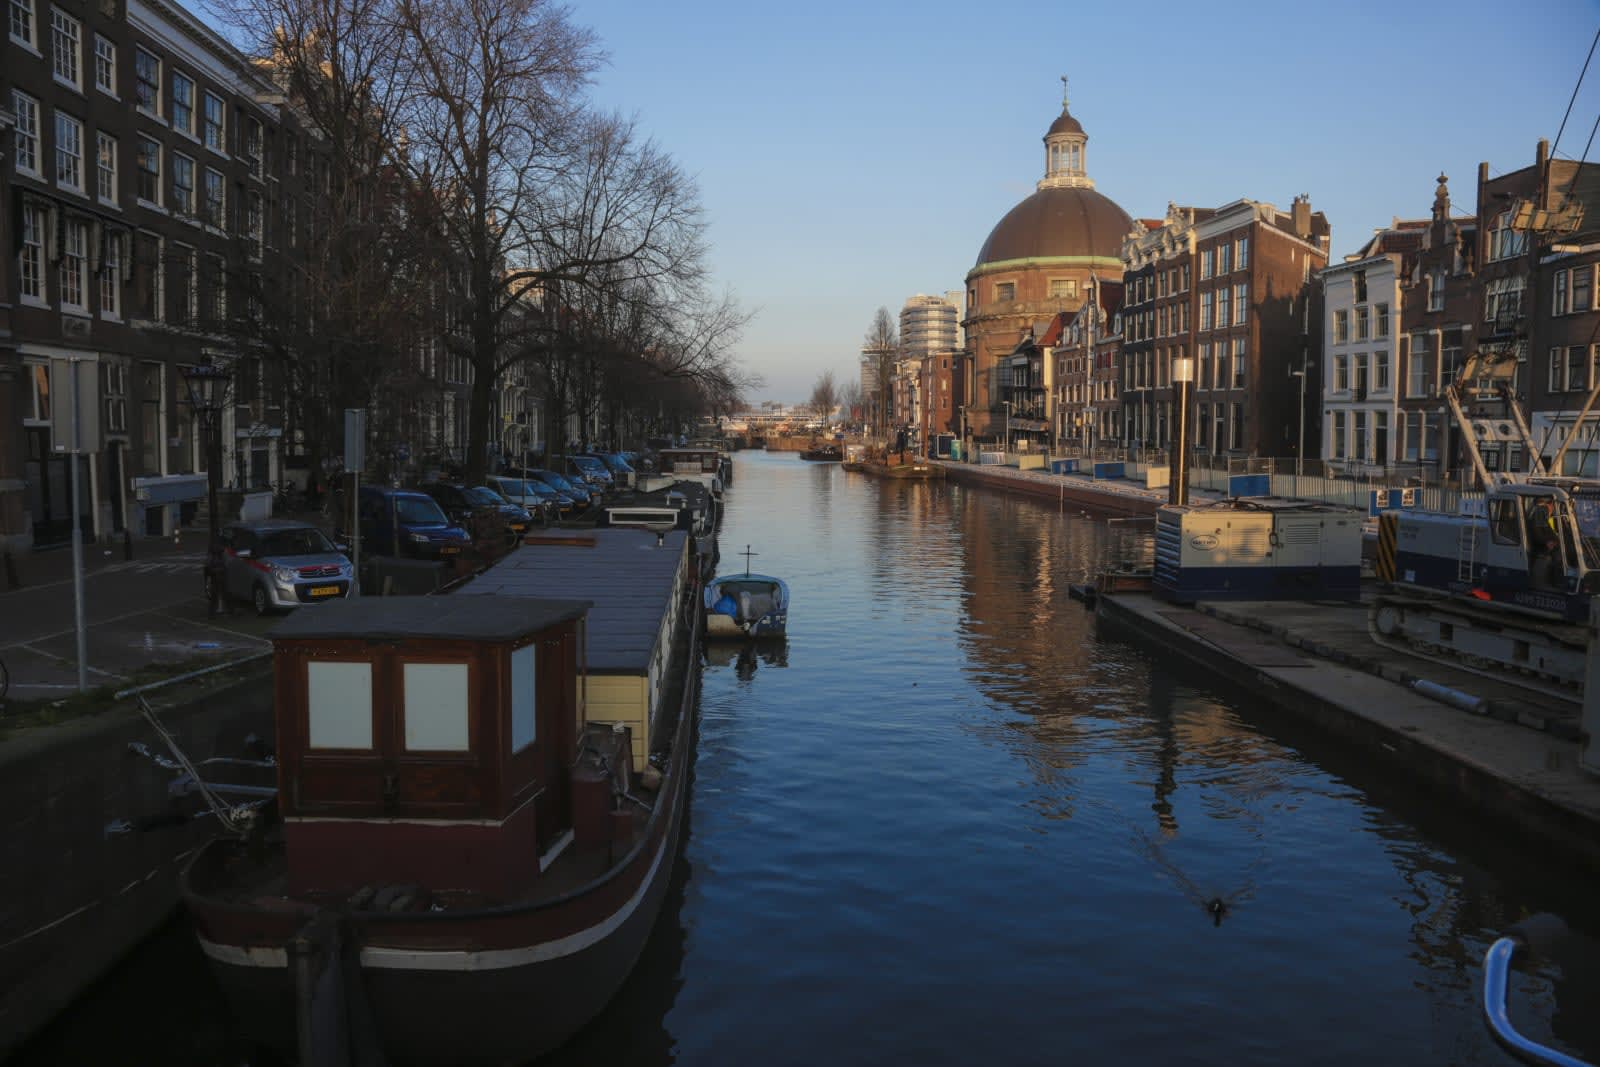 Amsterdam will limit Airbnb rentals to 30 days per year